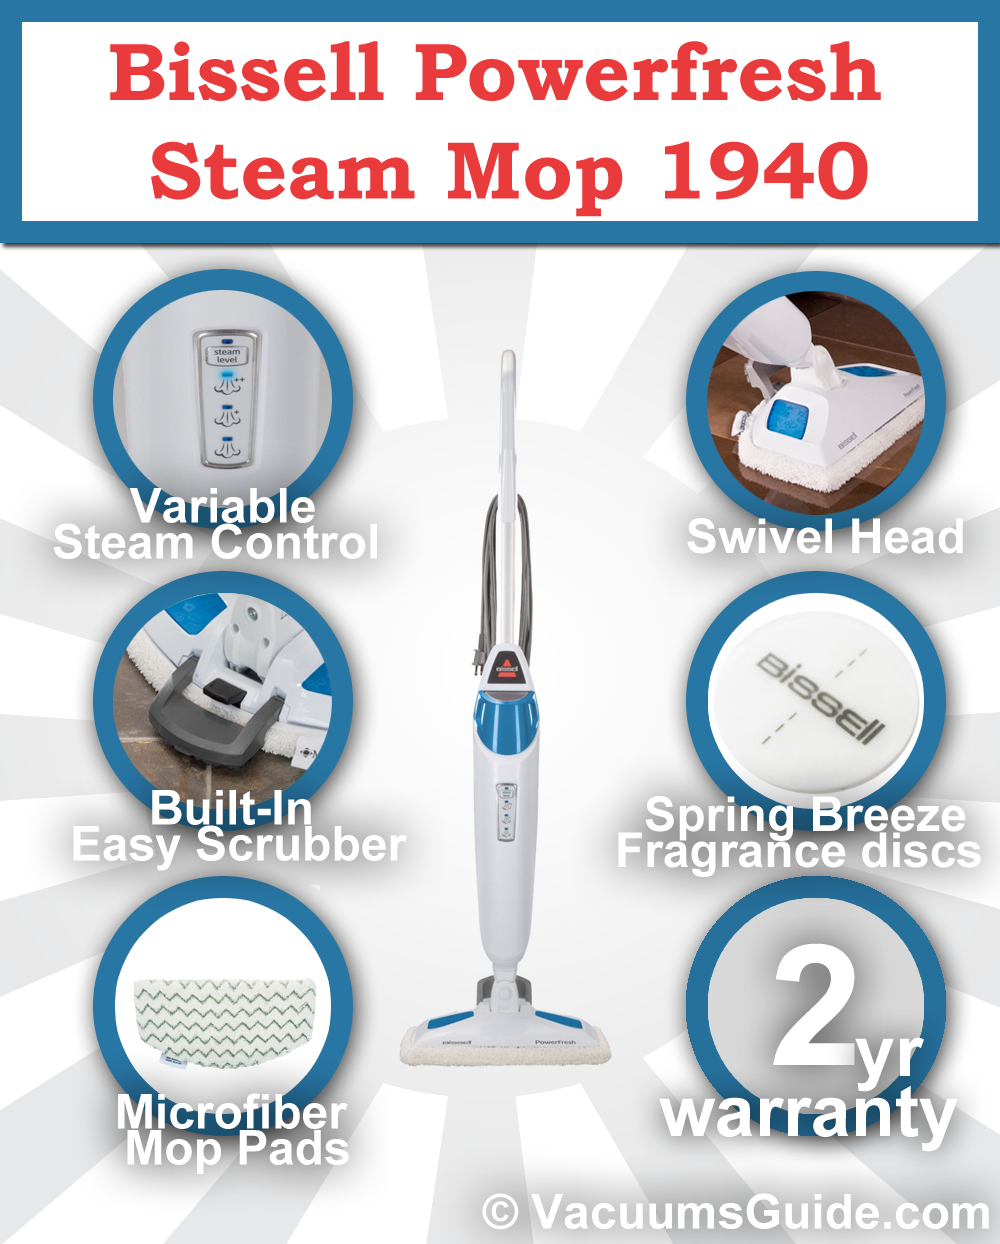 Getting Addicted To The Bissell Powerfresh Steam Mop 1940